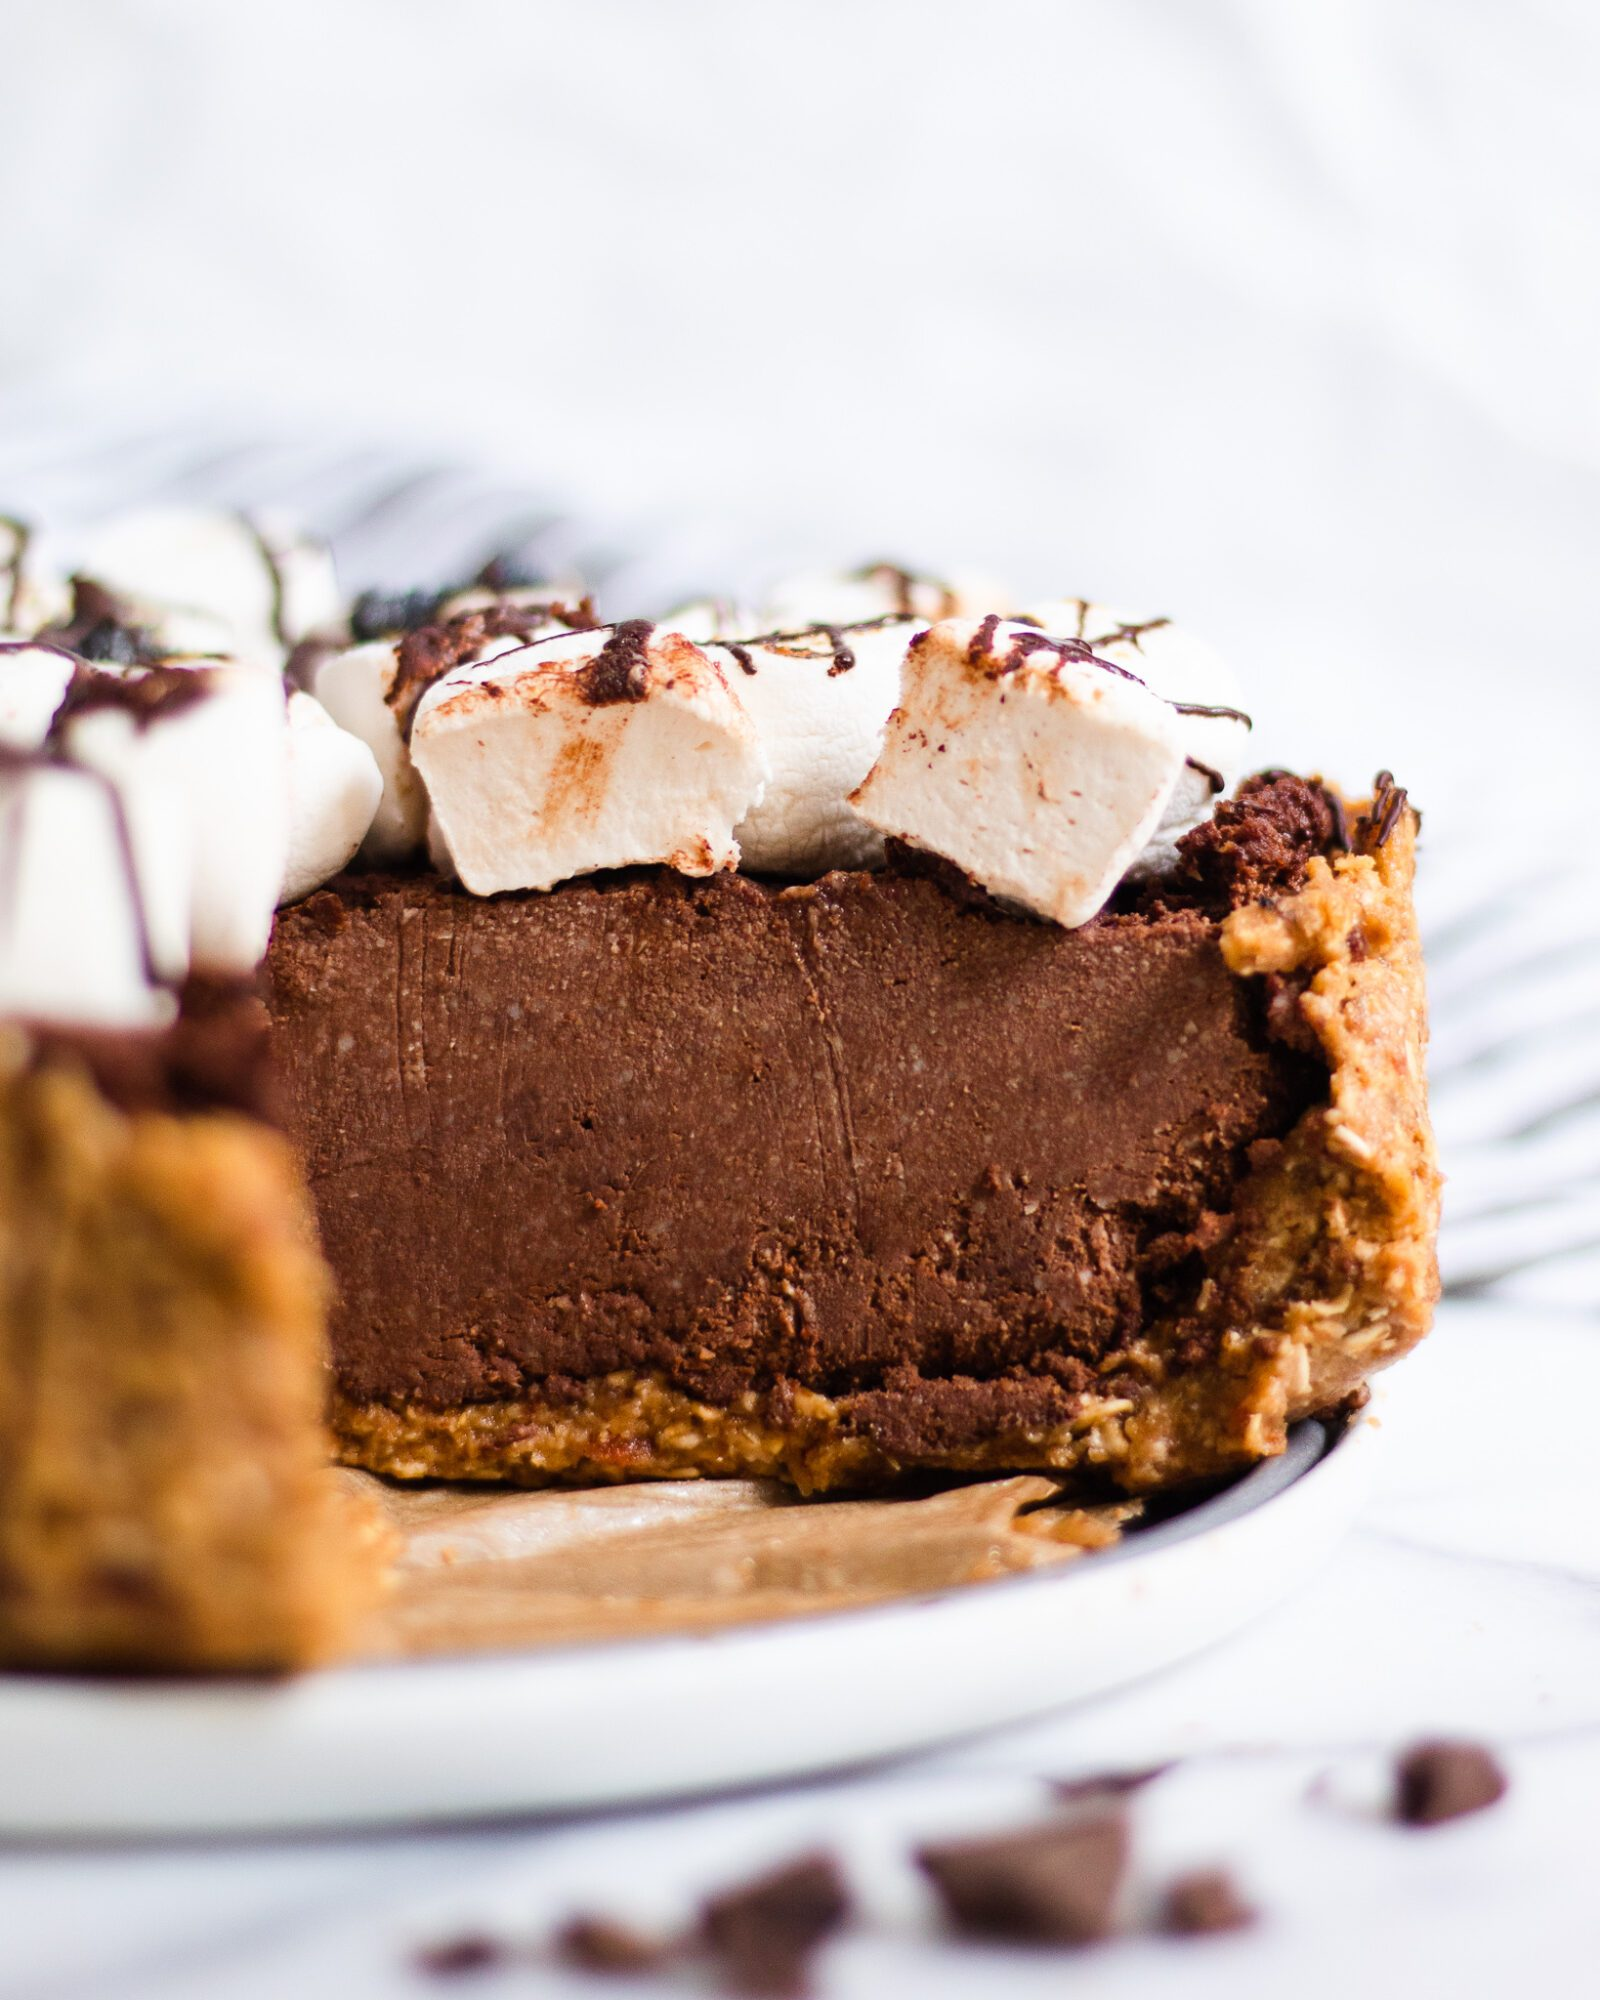 slice of chocolate pie taken out